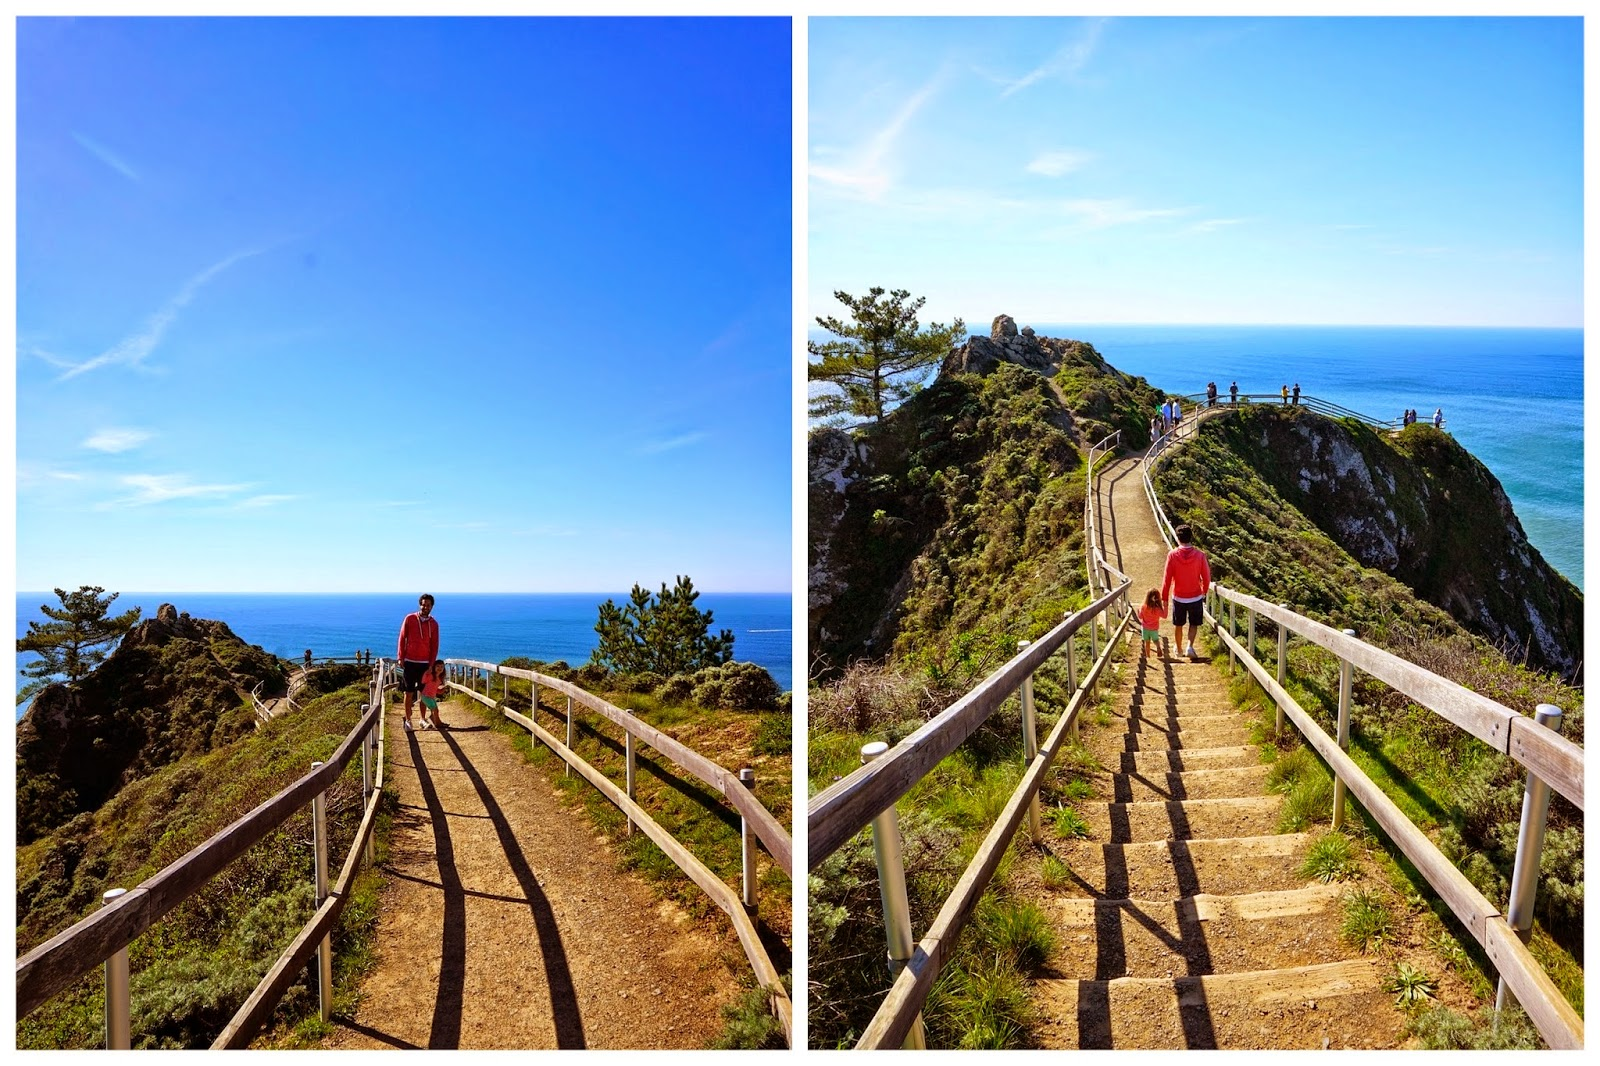 From The Muir Beach Outlook There Are Number Of Great Options If You Want To Continue Exploring Area Stinson Is About 5 Miles Down Road And